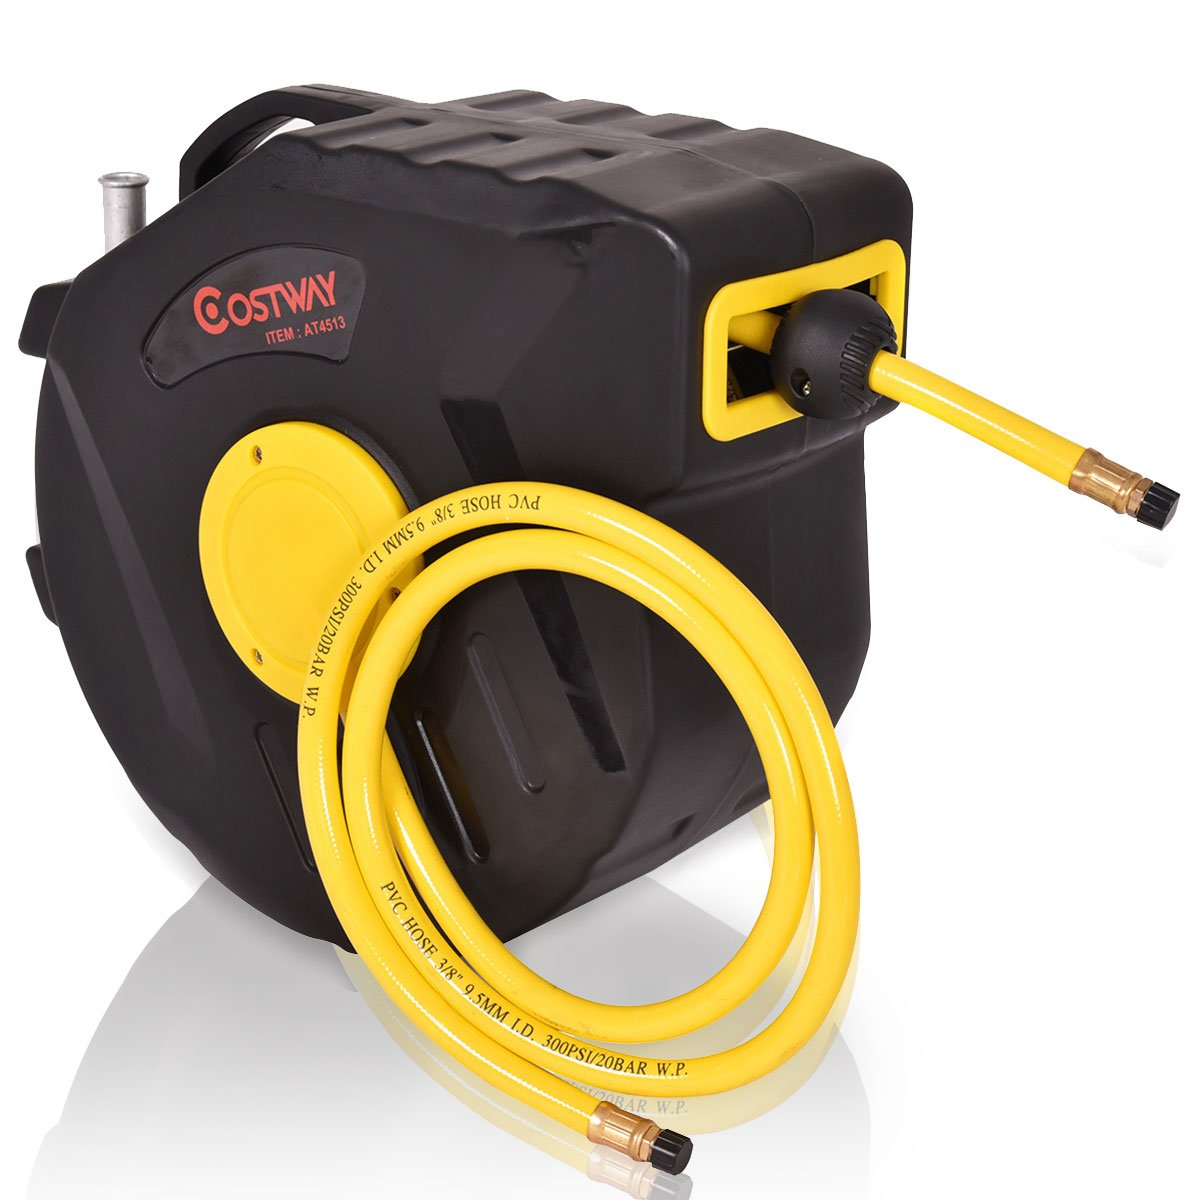 Toolsempire Air Hose Reel with 3/8 In. x 50 Ft Hybrid Air Hose Retractable Air Compressor Hose Reel 300 PSI Auto Rewind Garage Tools